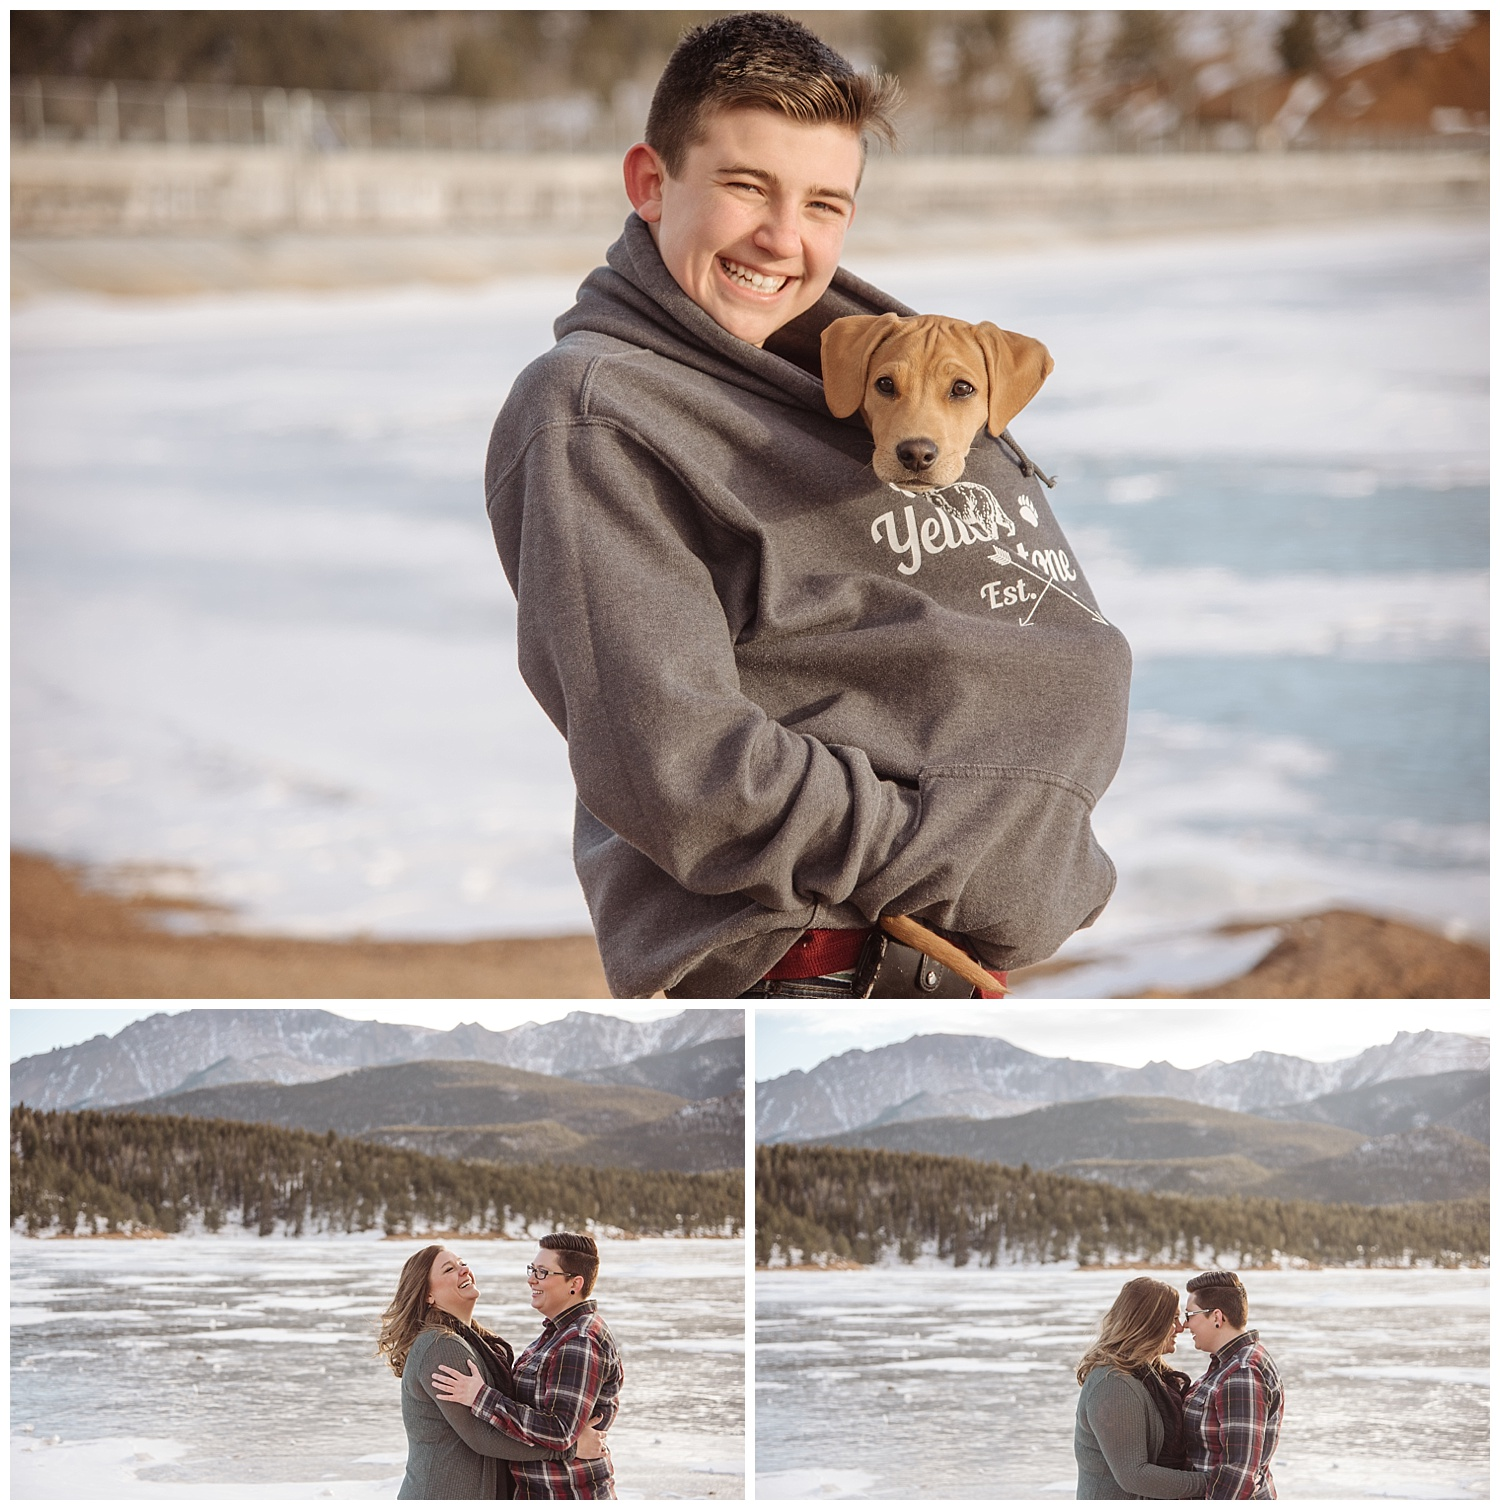 Young Man Holding Puppy in Sweater   Jenny and Tara's Epic Mountain Engagement Session   Pikes Peak, Colorado Photography   Farm Wedding Photographer   Apollo Fields Wedding Photojournalism